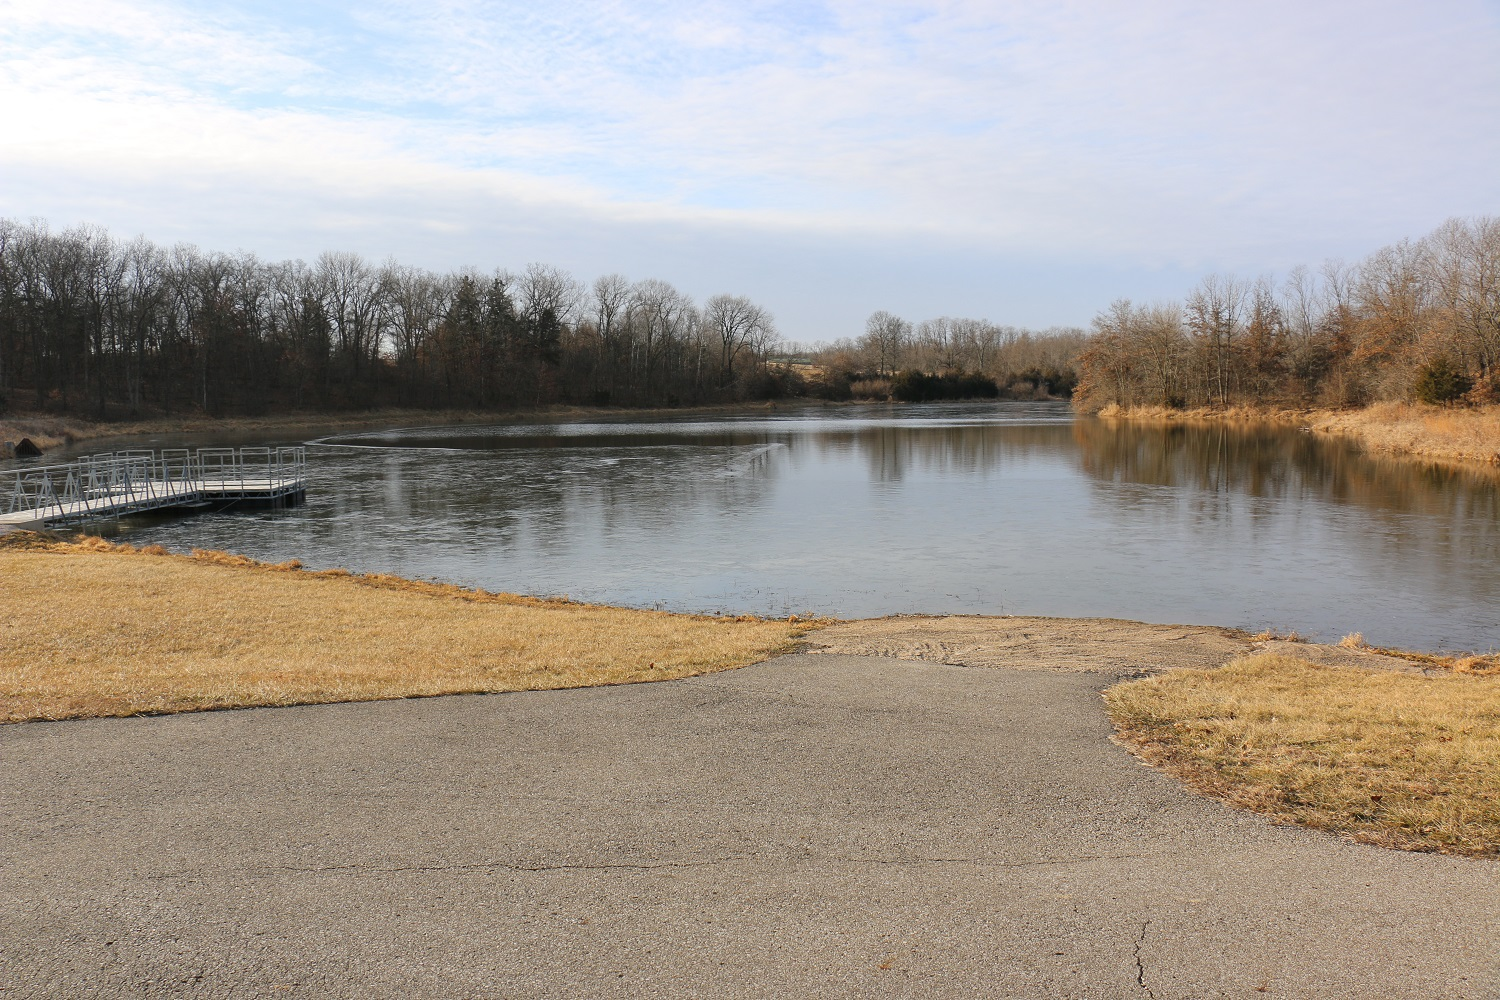 Boat ramp on the lake